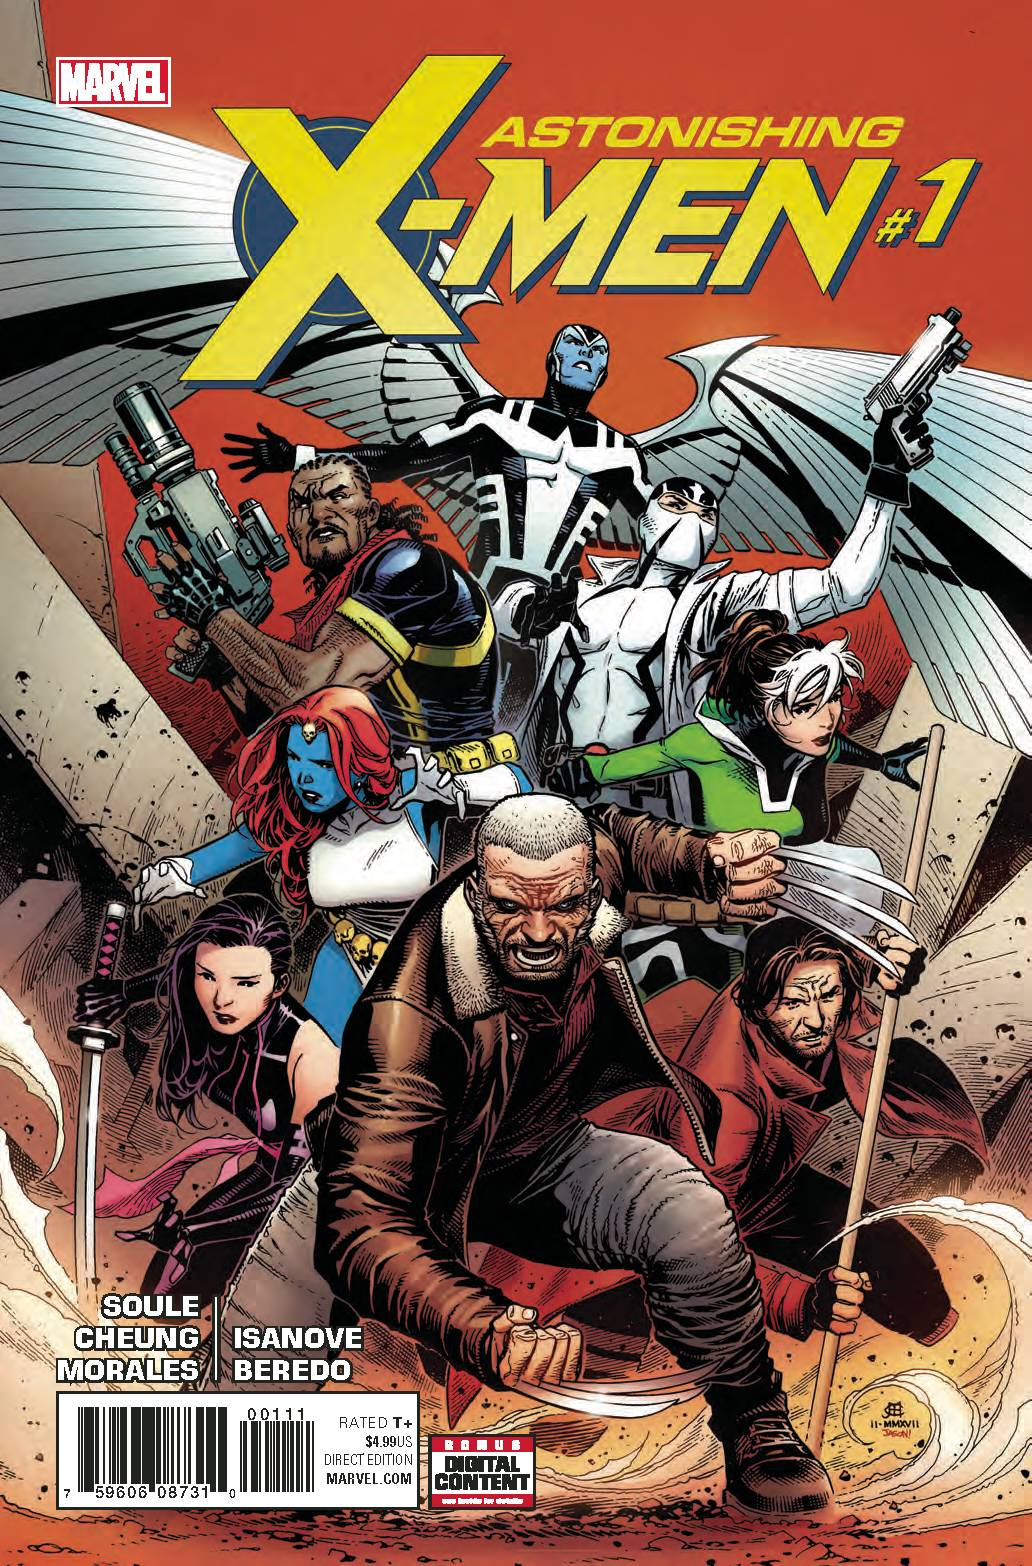 ASTONISHING X-MEN #1 - MARVEL COMICSWritten by Charles SouleArt by Jim CheungONLY THE X-MEN CAN SAVE US!An ancient evil is attacking the world's most powerful minds. It will have them by the time you finish this sentence, and a moment later, it will have us all. A band of X-MEN discovers the truth behind the threat, but there is no time left. PSYLOCKE, OLD MAN LOGAN, BISHOP, ARCHANGEL, FANTOMEX, ROGUE and GAMBIT will attempt to save a world that hates and fears them. Why? BECAUSE THEY ARE THE X-MEN.From blockbuster writer CHARLES SOULE and joined by a roster of superstar artists beginning with JIM CHEUNG. ASTONISHING X-MEN. It's the X-book you need.